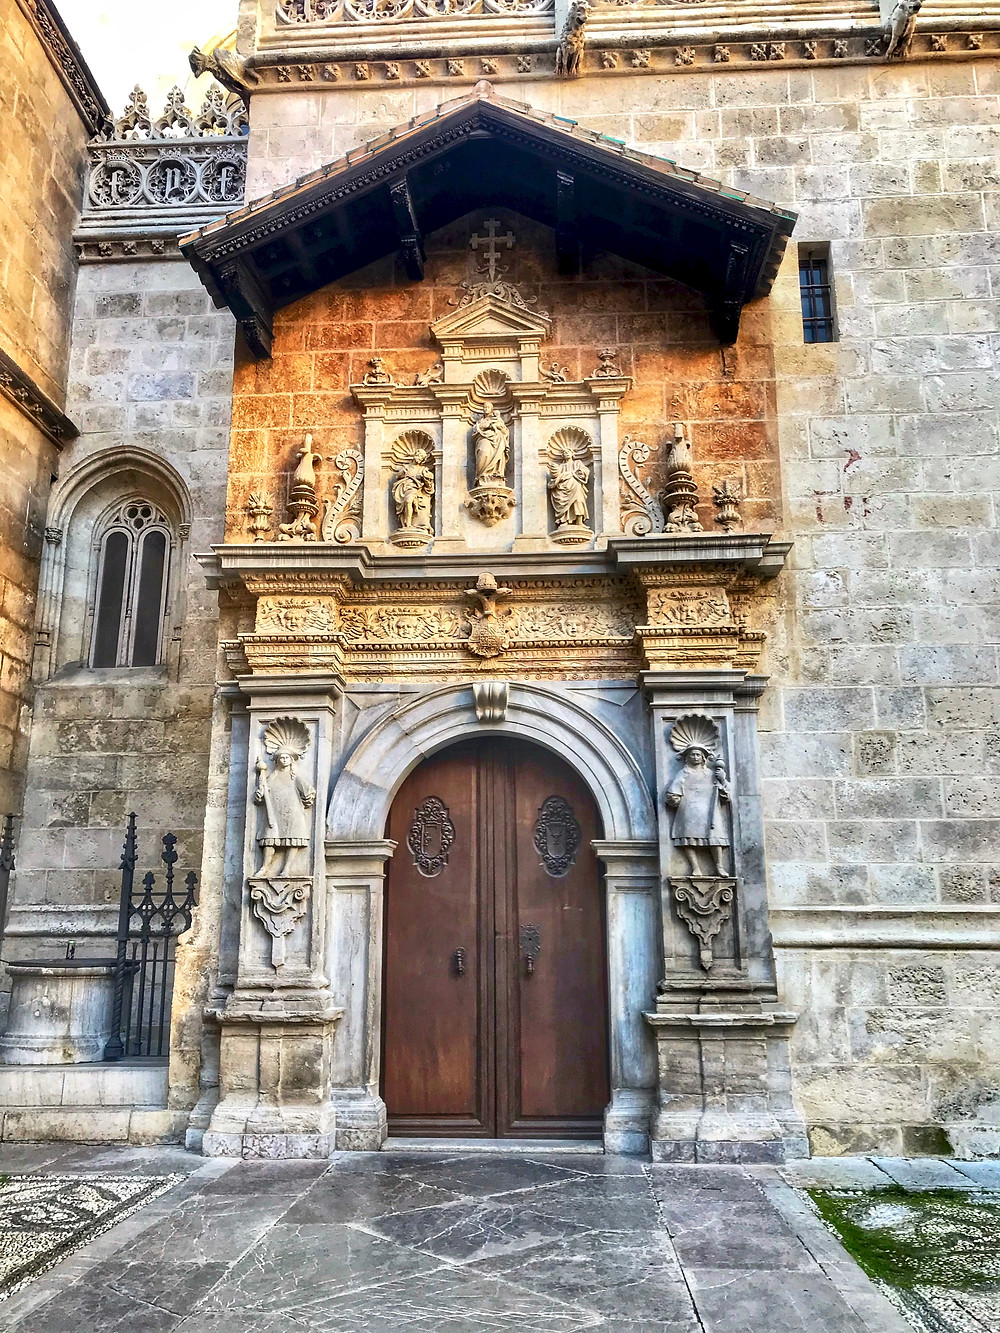 entry to the Capilla Real, the Royal Chapel of Granada